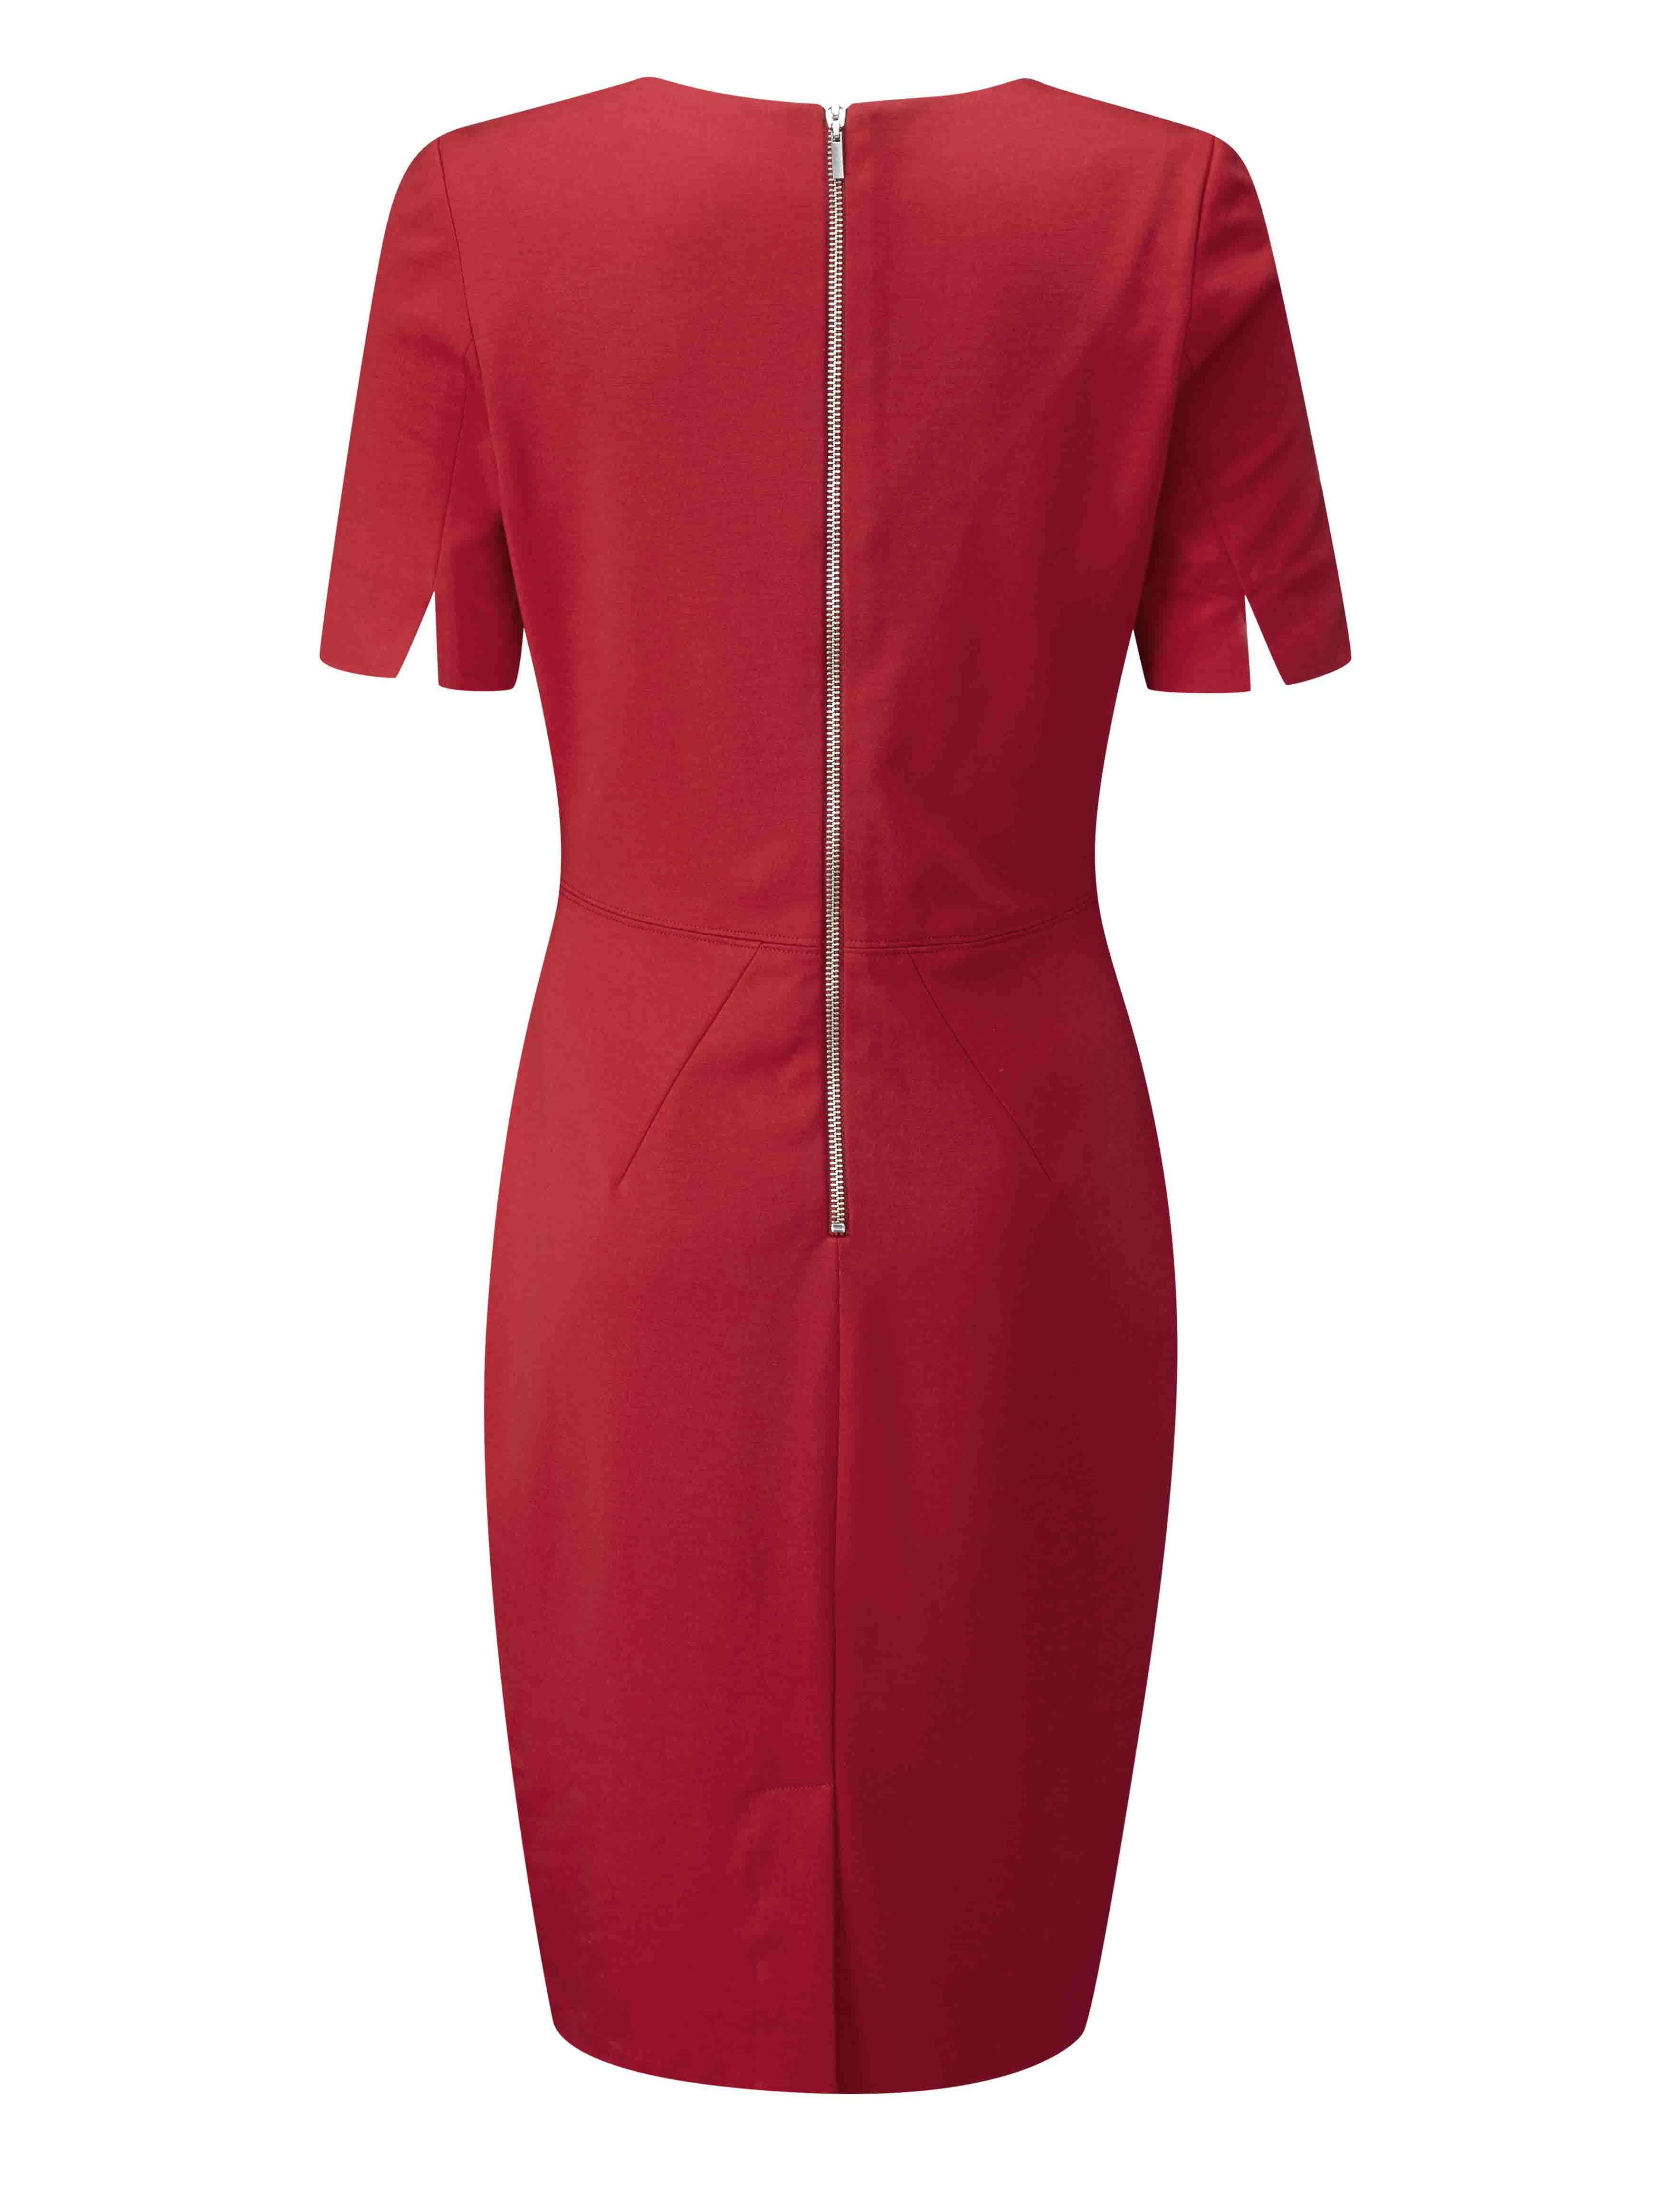 Women's Contourflex Pendleton Dress